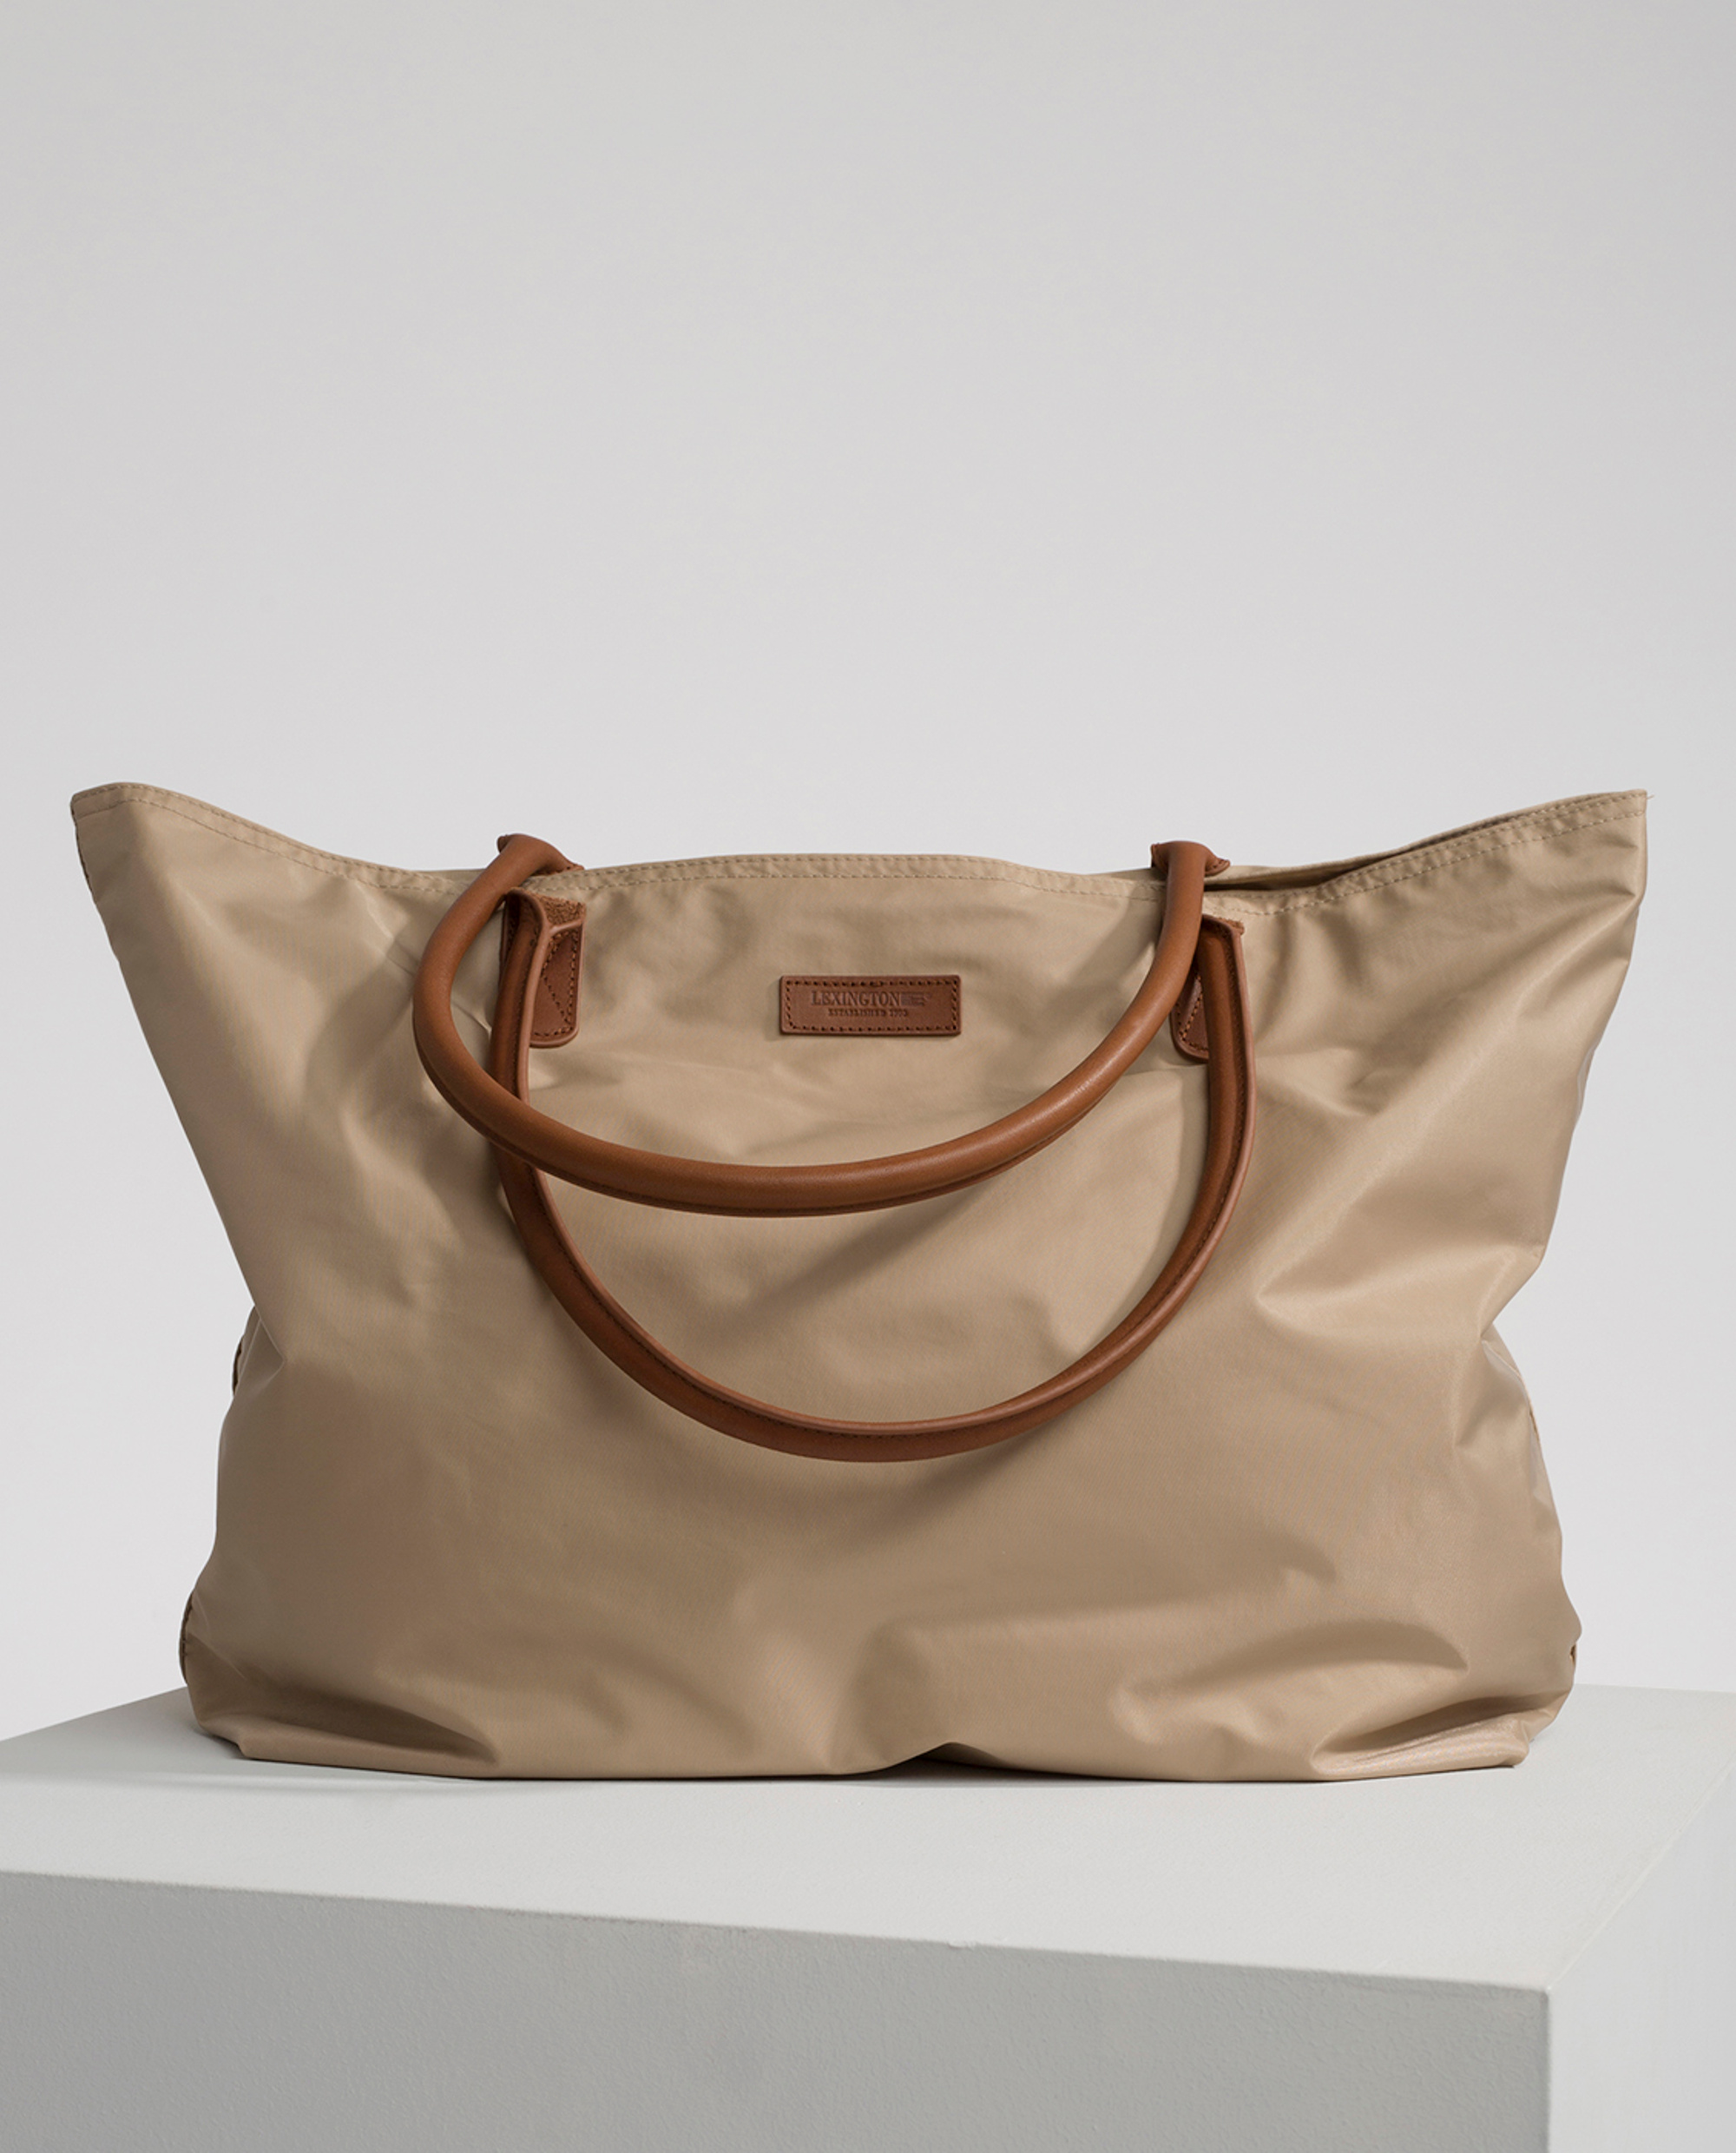 Mayflower Nylon Tote Bag, Warm Sand